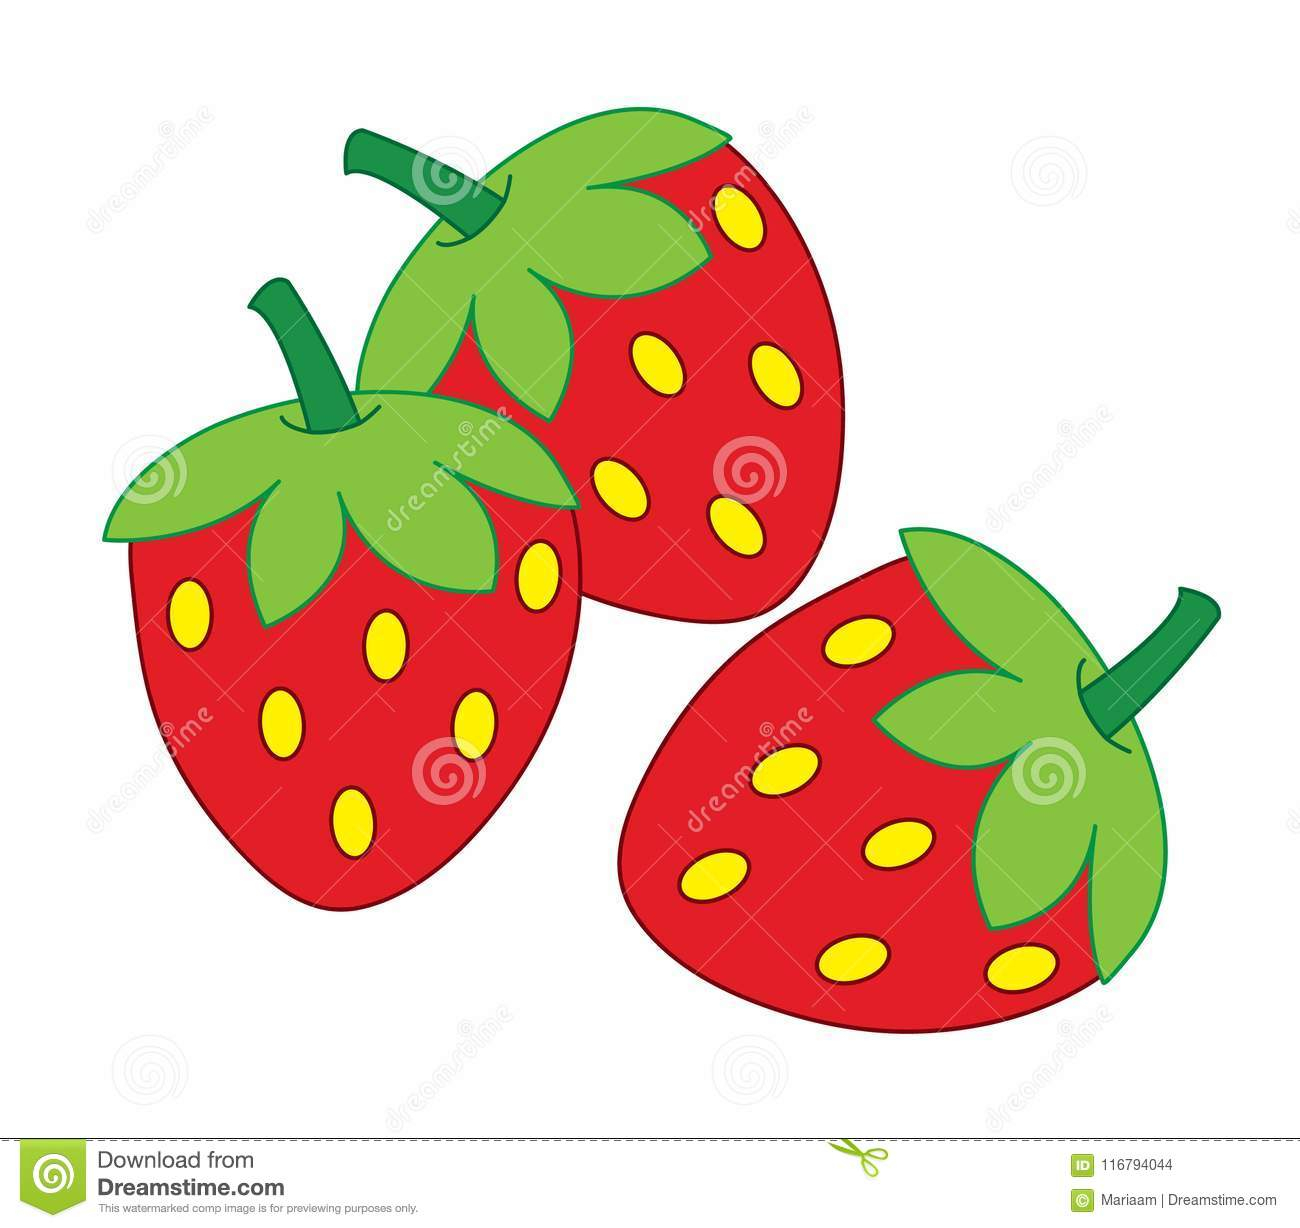 Strawberries clipart printable. Strawberry for free images